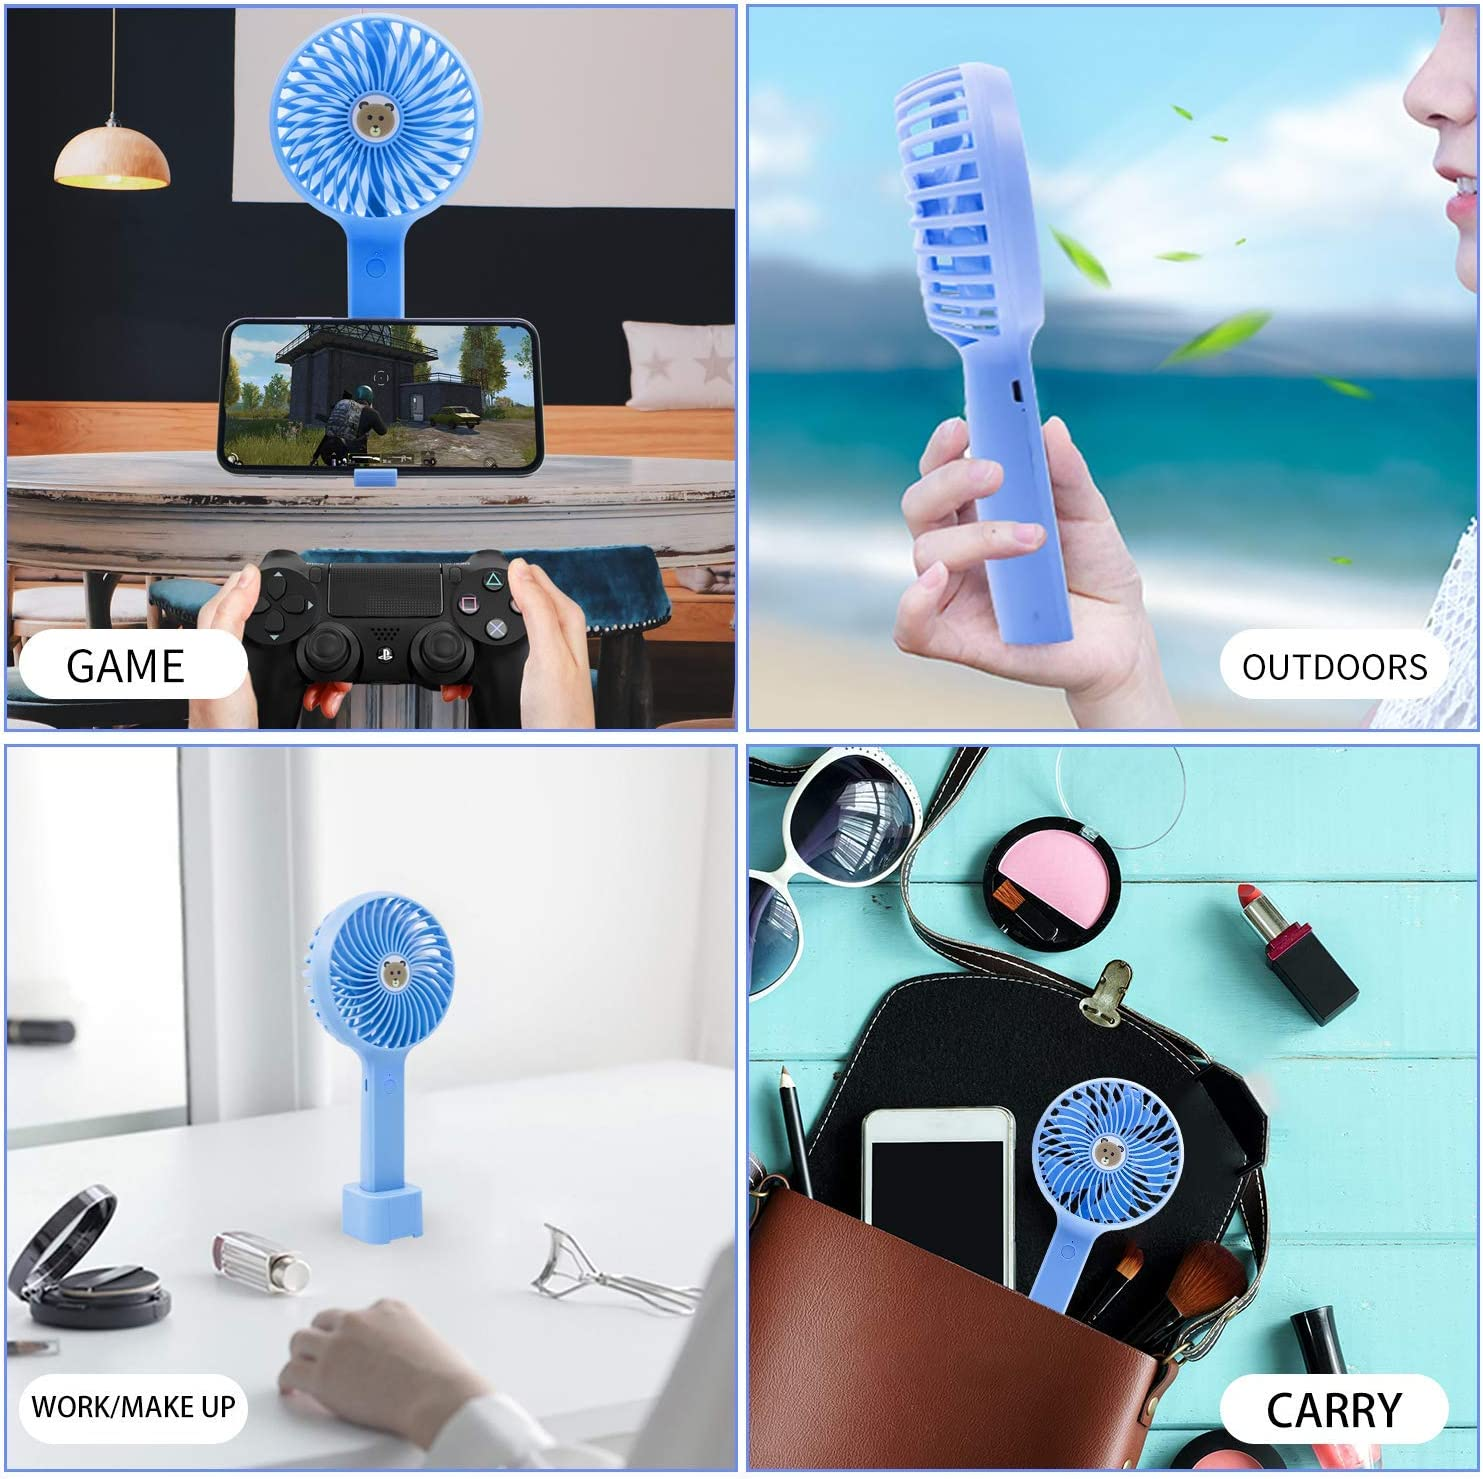 Handheld Fan,USB Rechargeable,3 Speeds ,Blue for Laptop Table Camping Outdoors Home Office WYQWANLJX Mini Fan 2Pcs